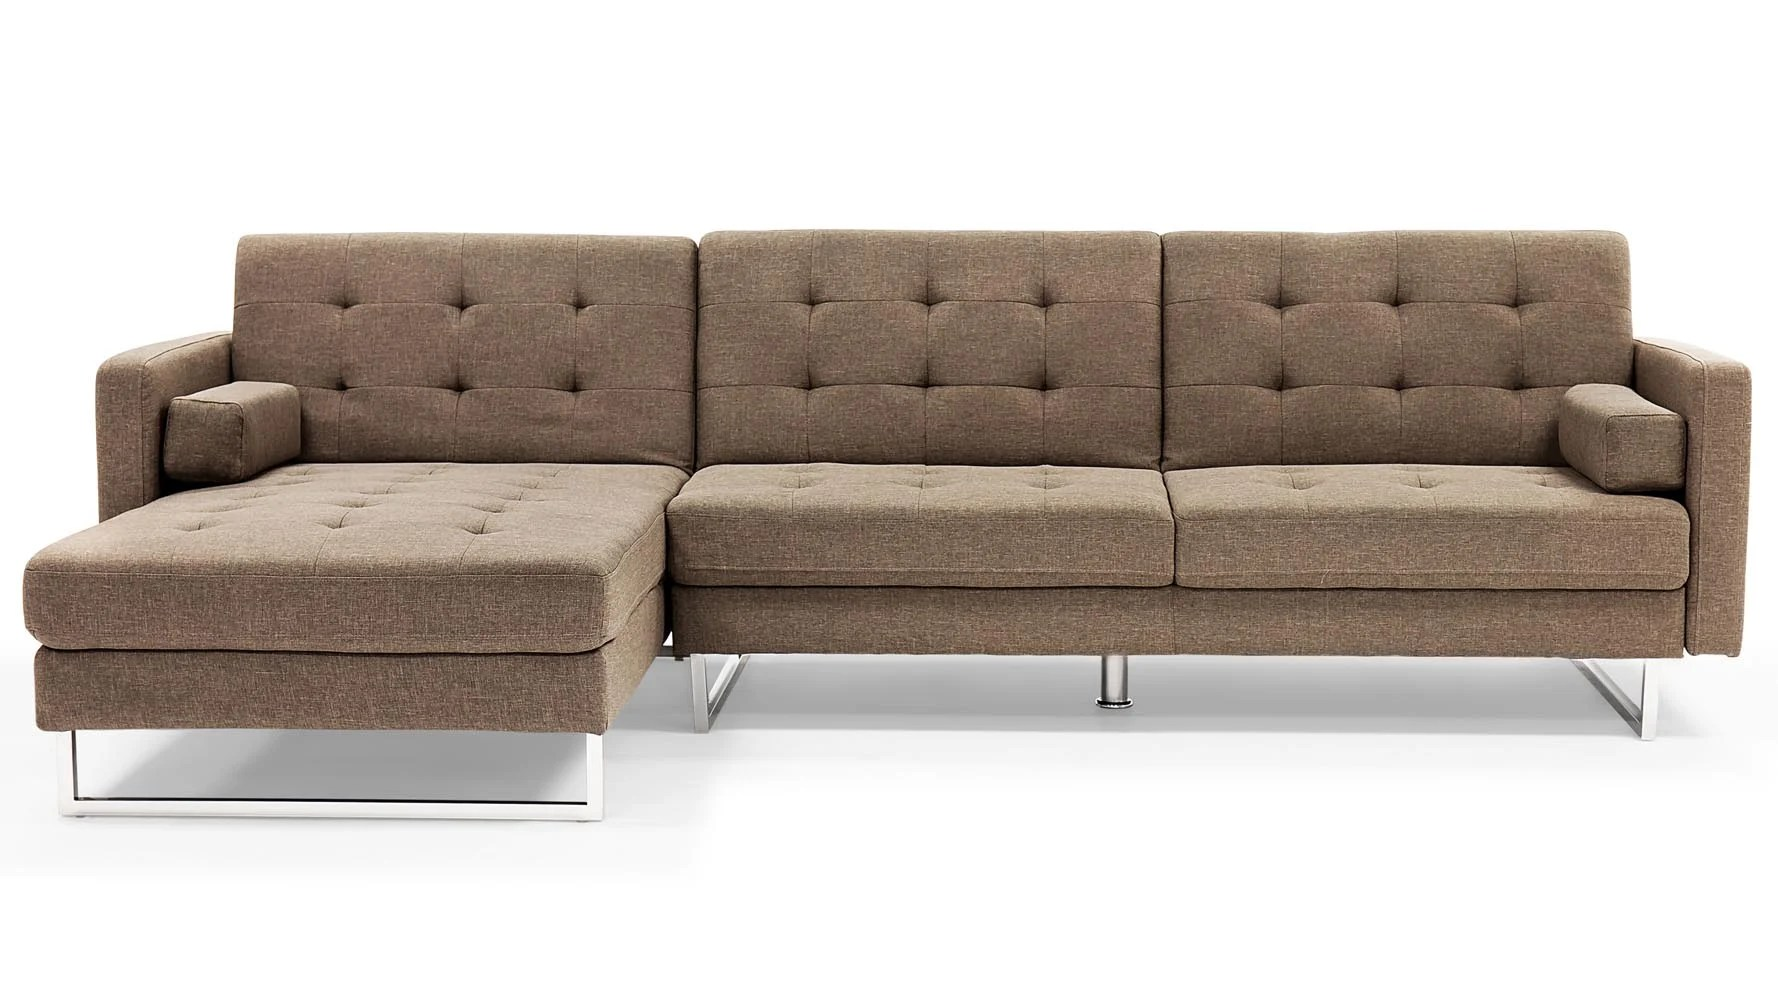 tan fabric sofa modern contemporary black leather upholstered sectional beckham u shaped